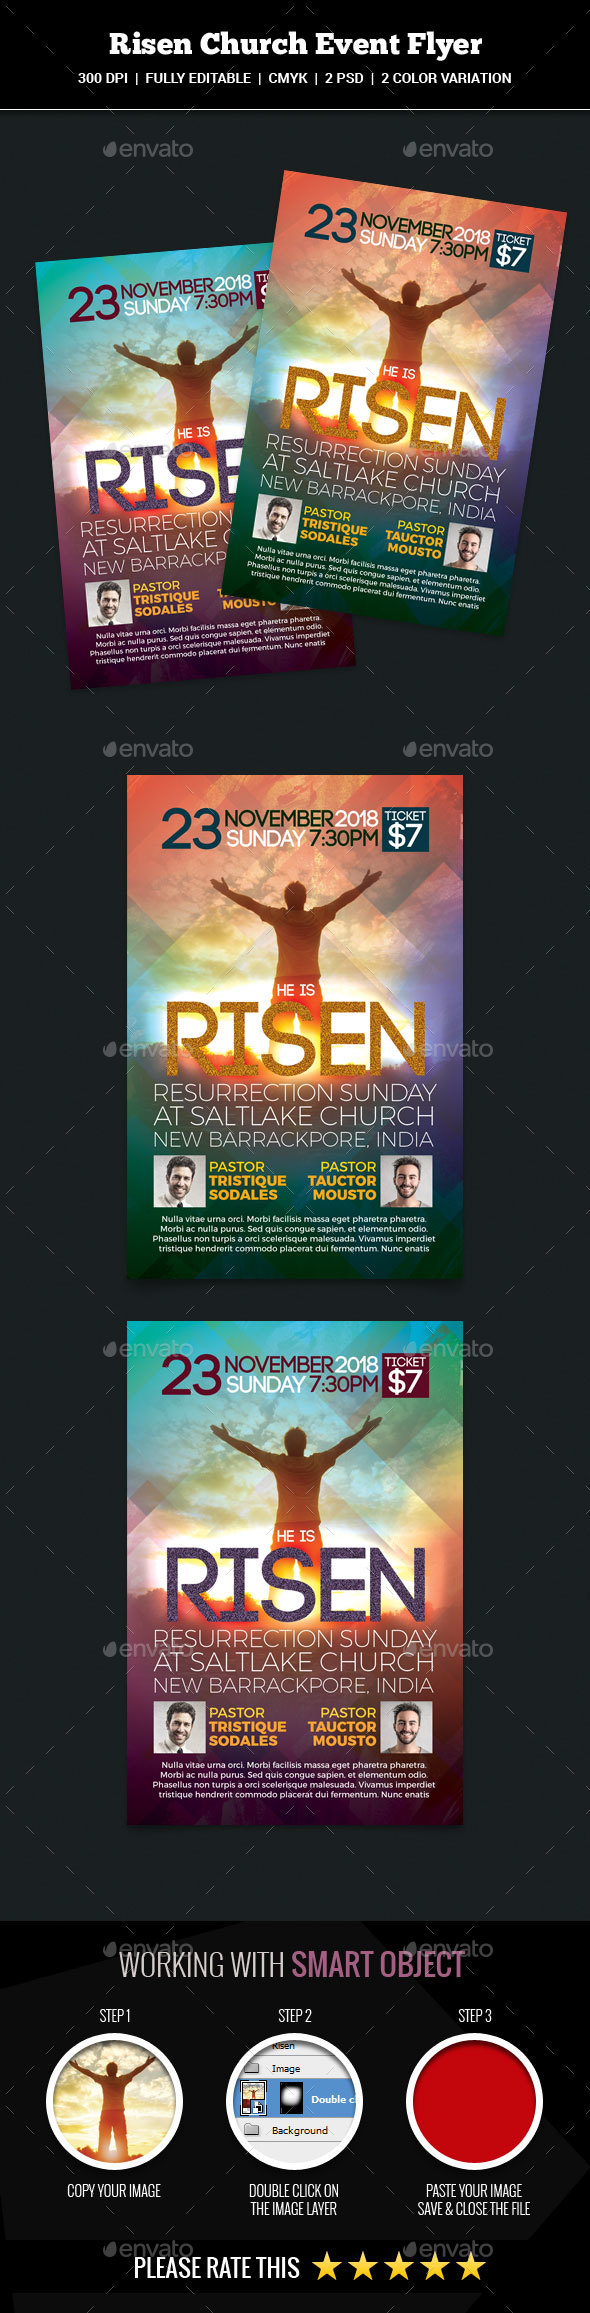 Risen Church Event Flyer - Church Flyers